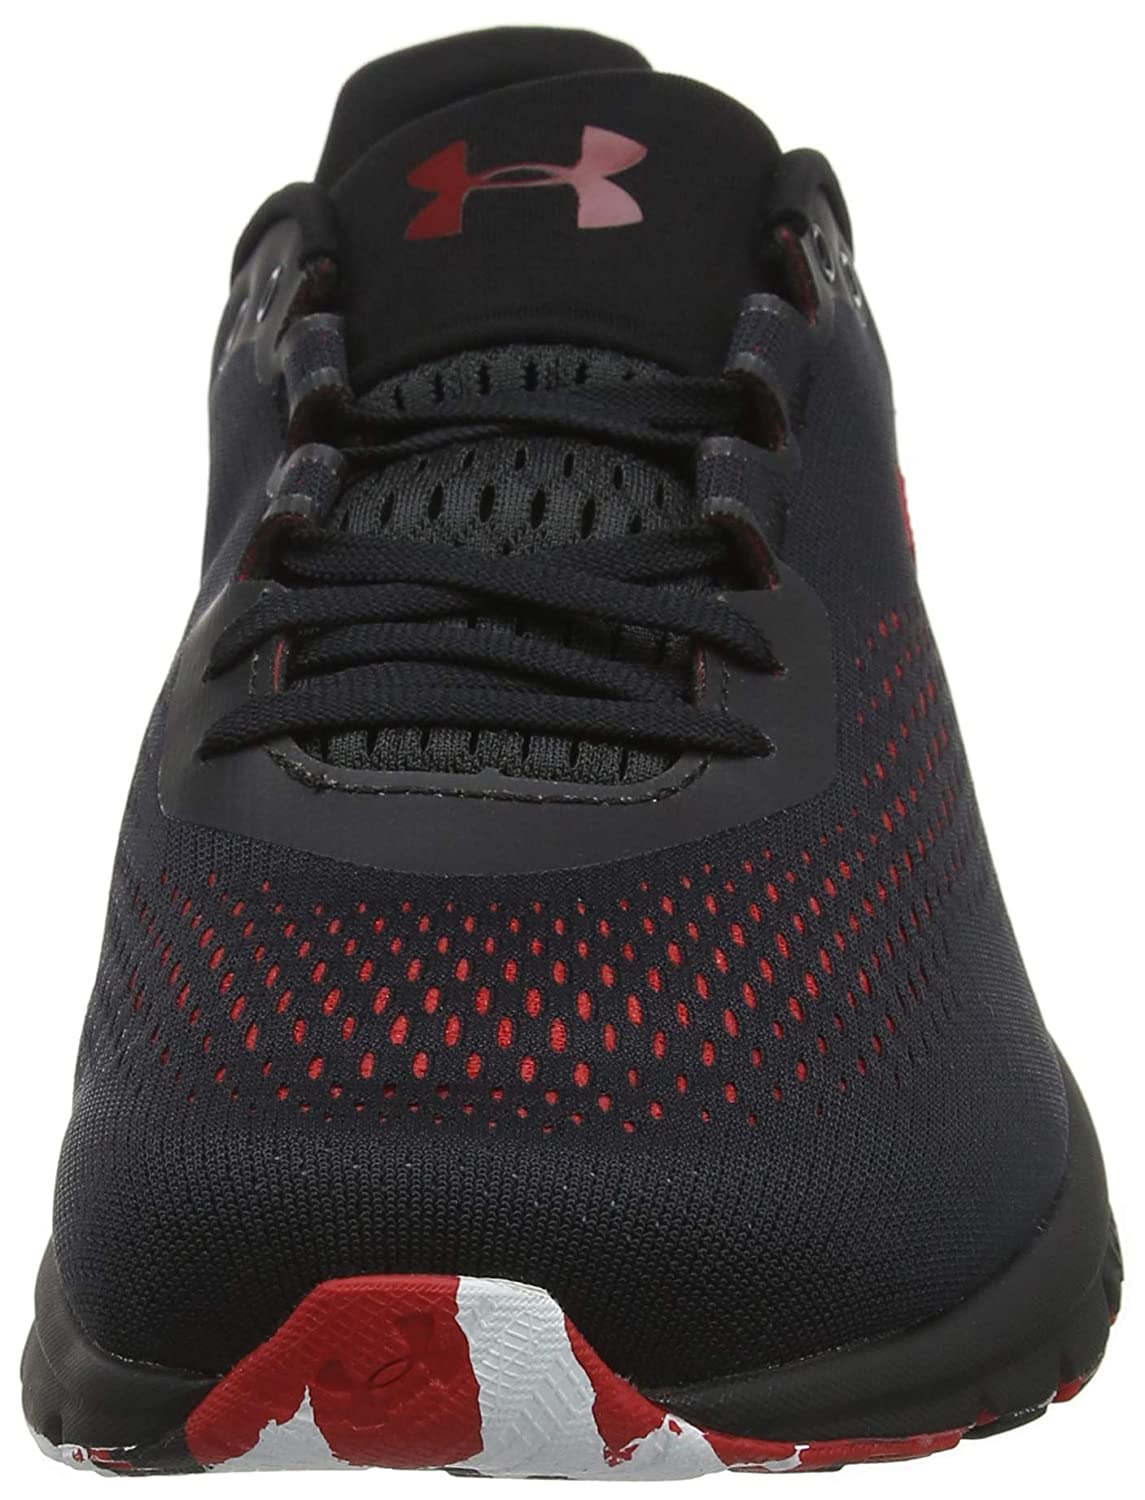 newest 46ab5 346ad ... Under Armour Herren UA Charged Charged Charged Spark Laufschuhe d0179e  ...